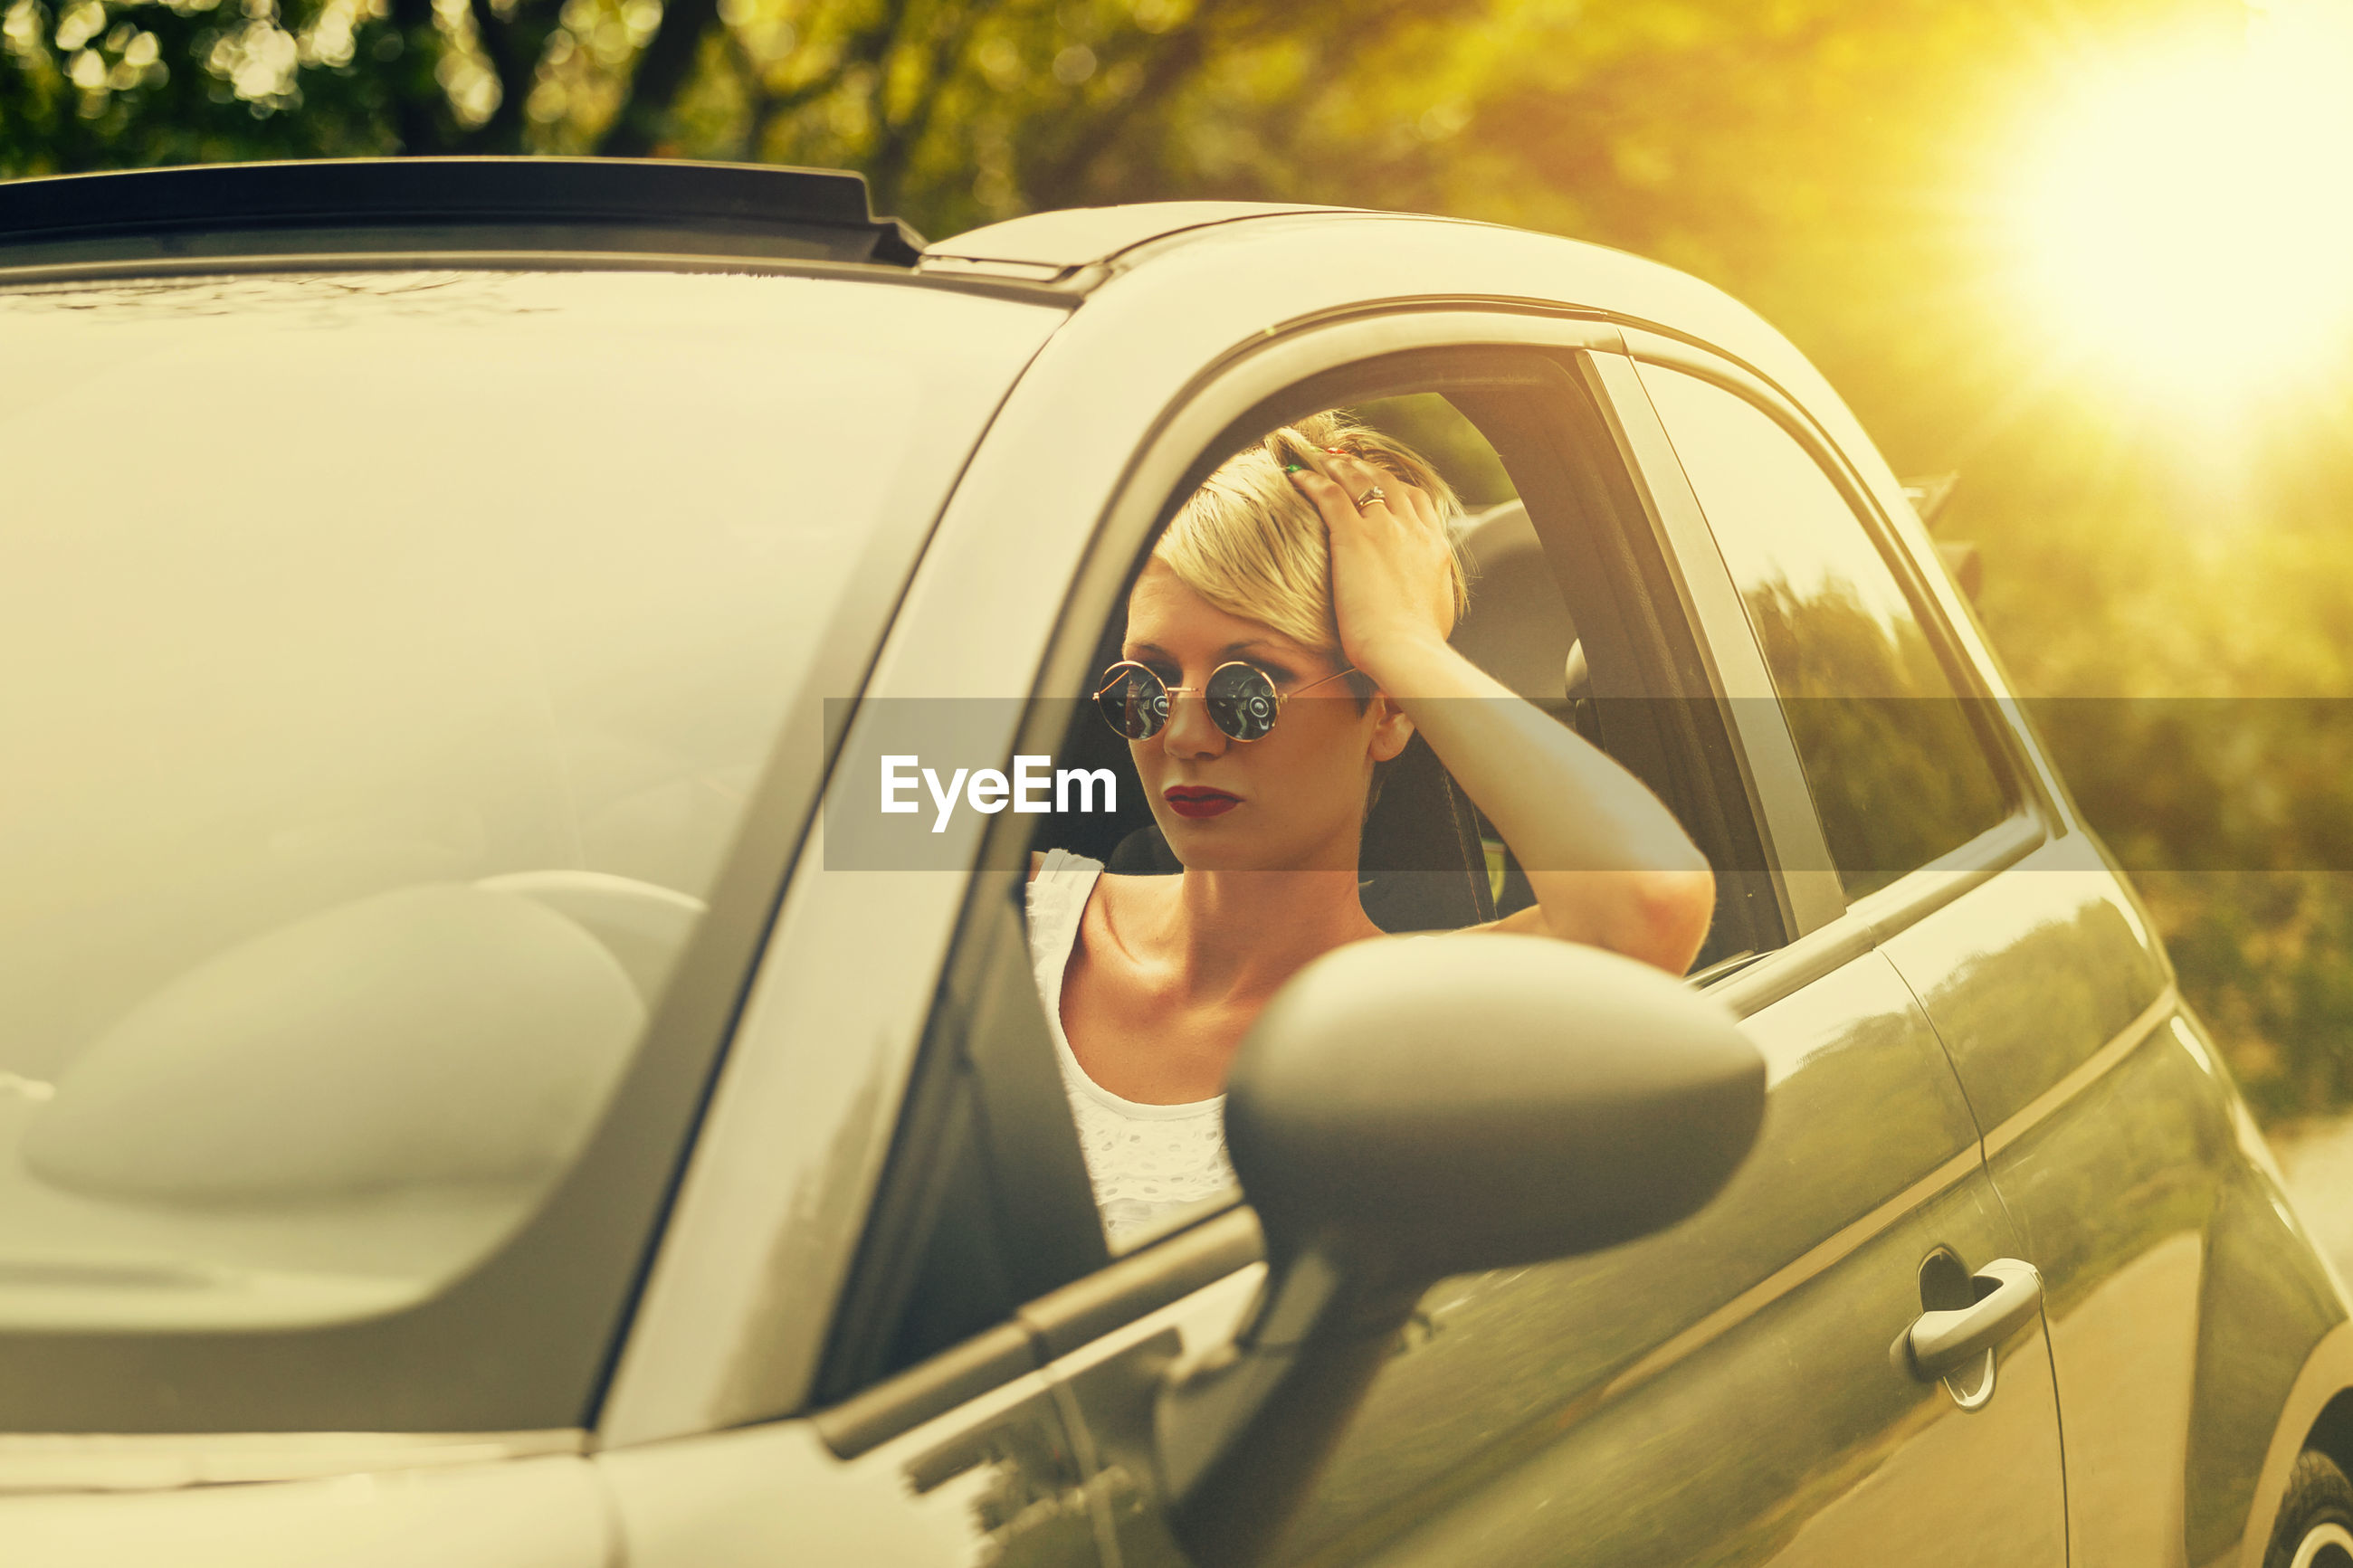 Portrait of woman wearing sunglasses sitting in car